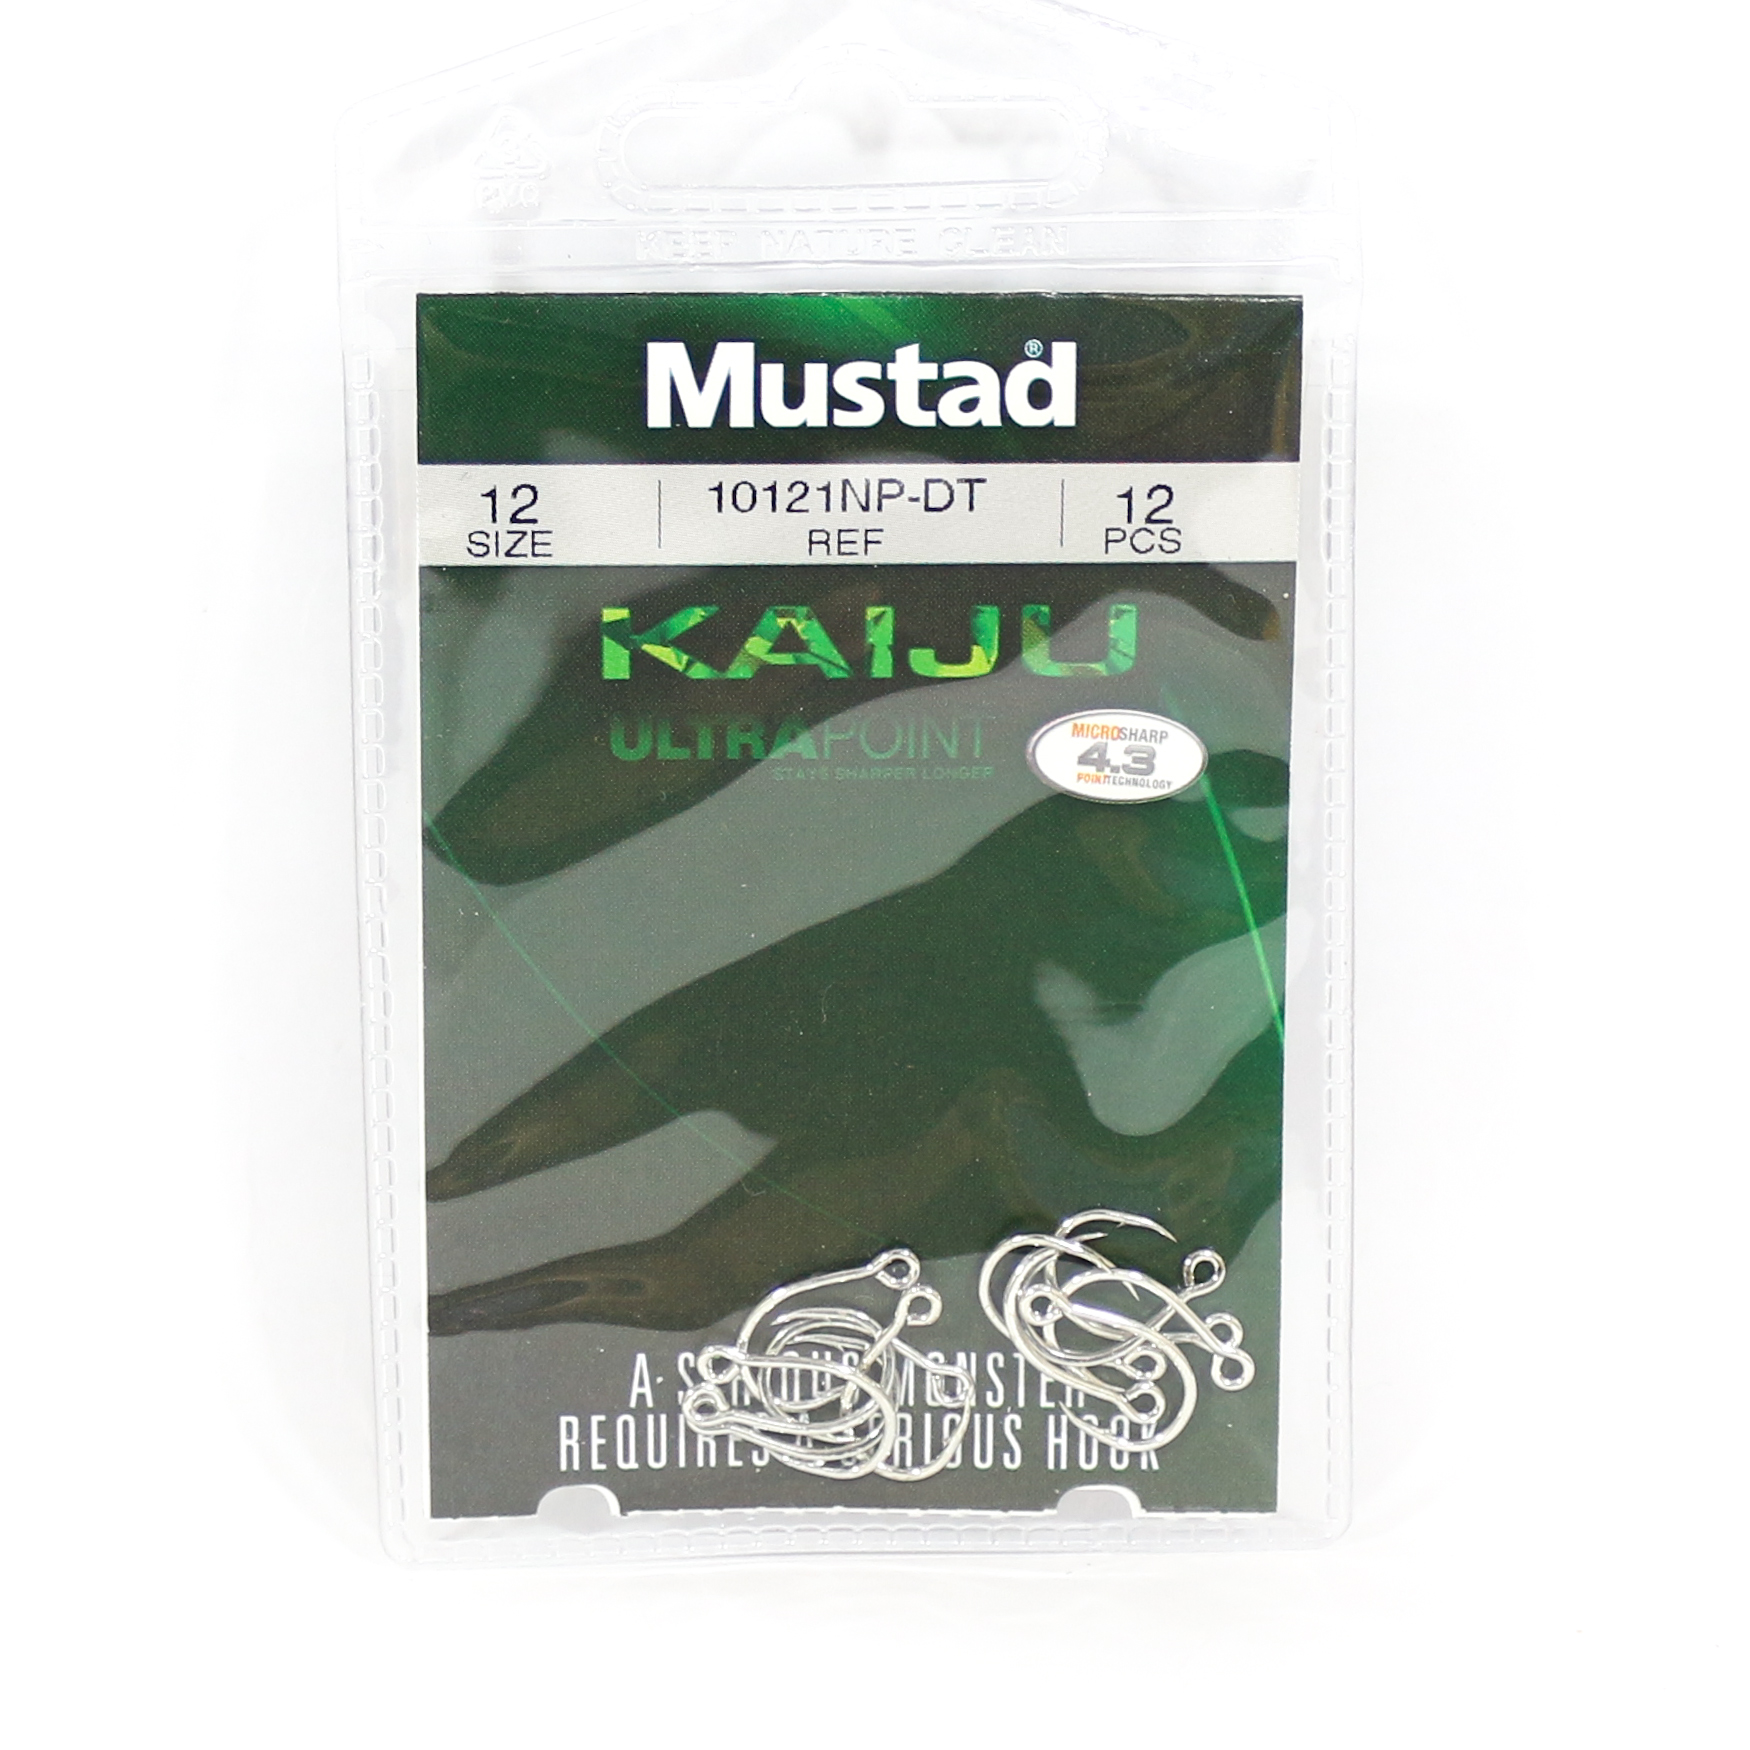 Mustad Single Hook Kaiju In-Line Size 12 (5220)